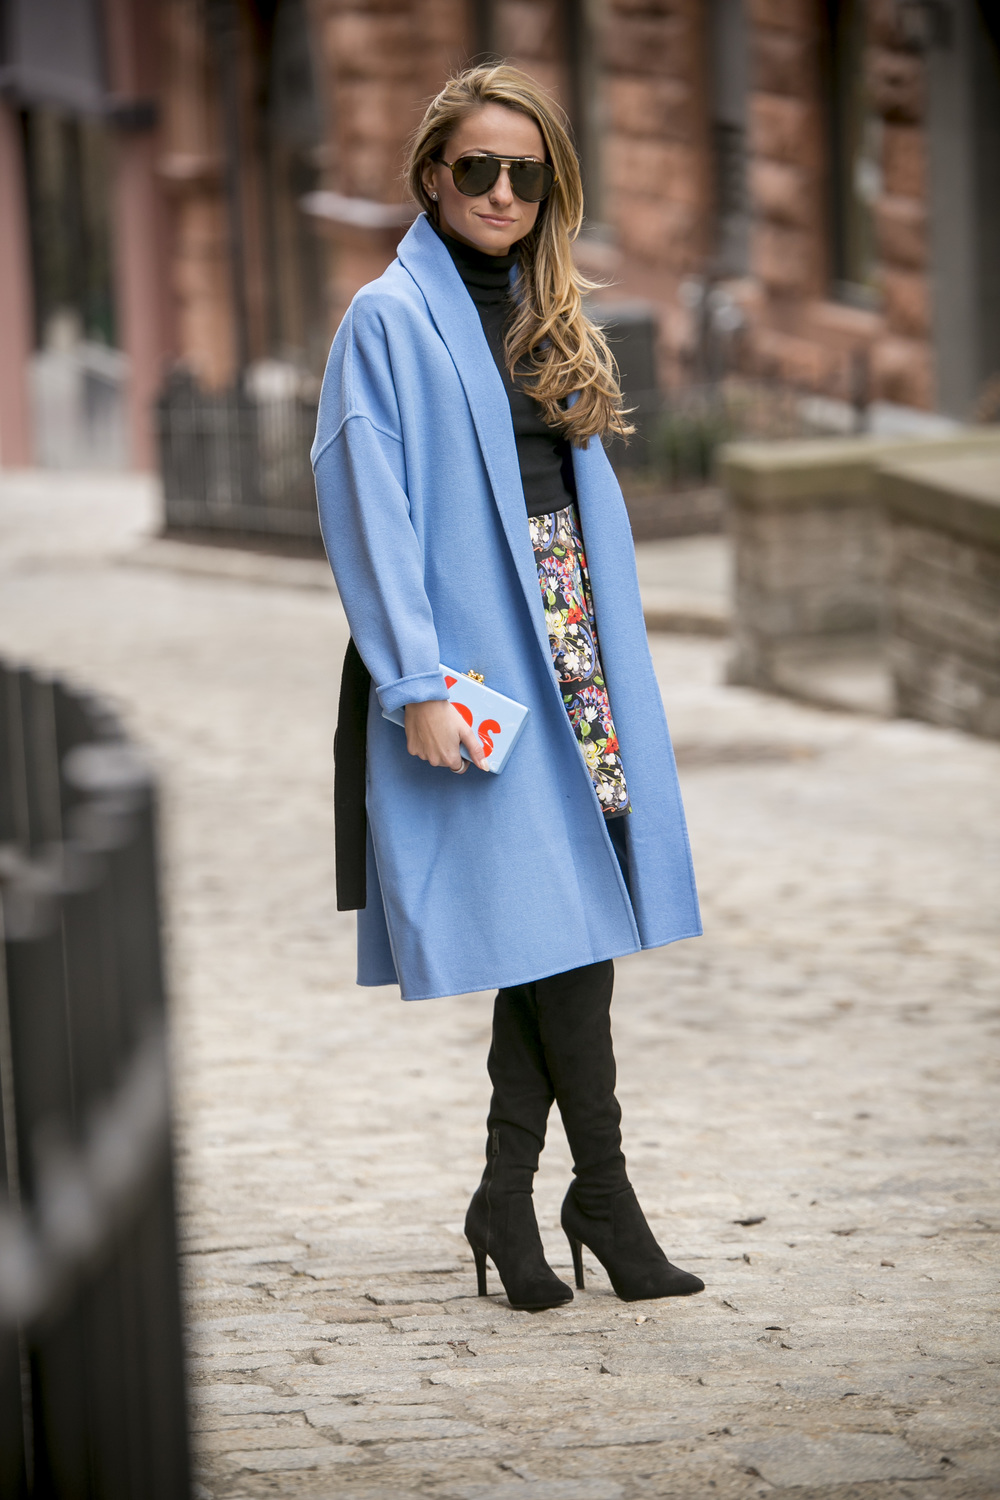 Maje blue coat, alice and olivia floral print skirt, and Edie Parker Yes clutch. Fashion and Style inspo from Lauren Recchia NYFW